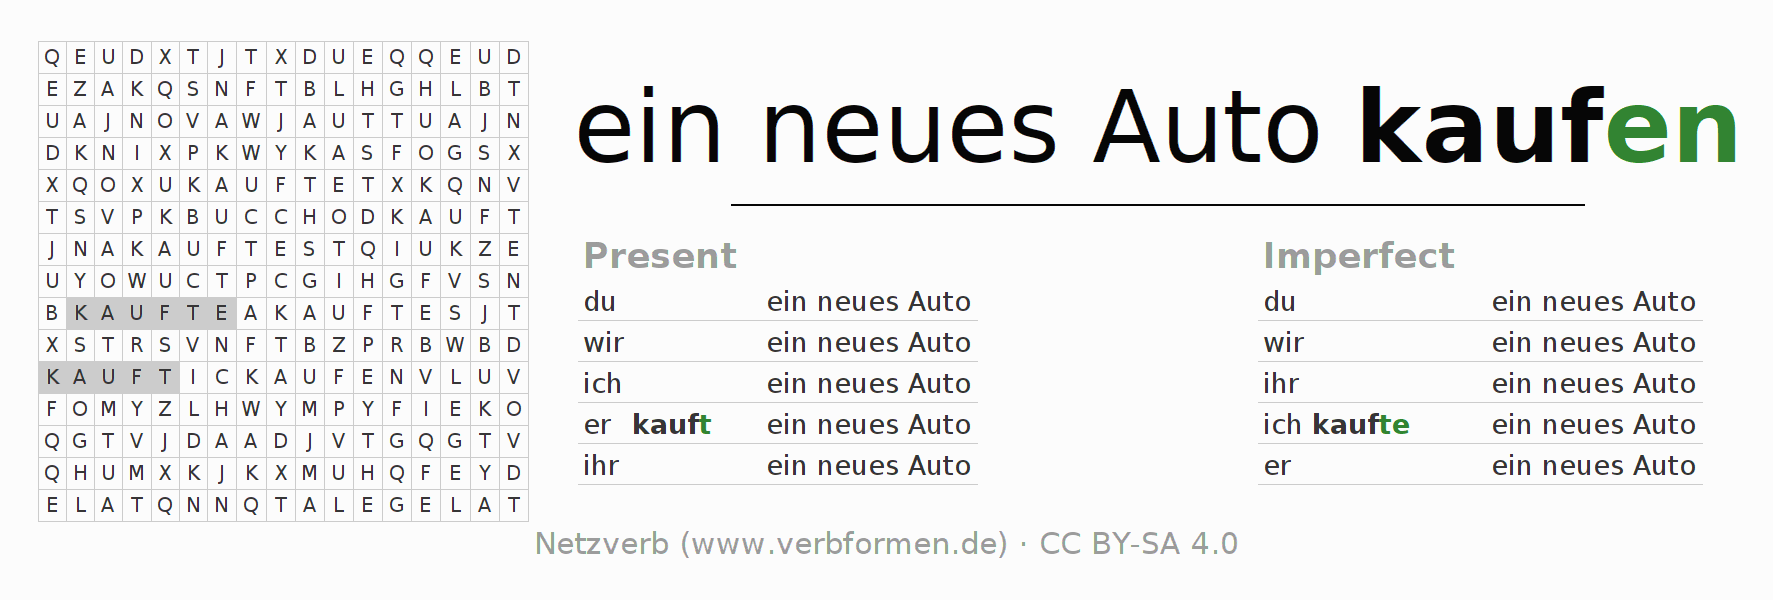 Word search puzzle for the conjugation of the verb ein neues Auto kaufen